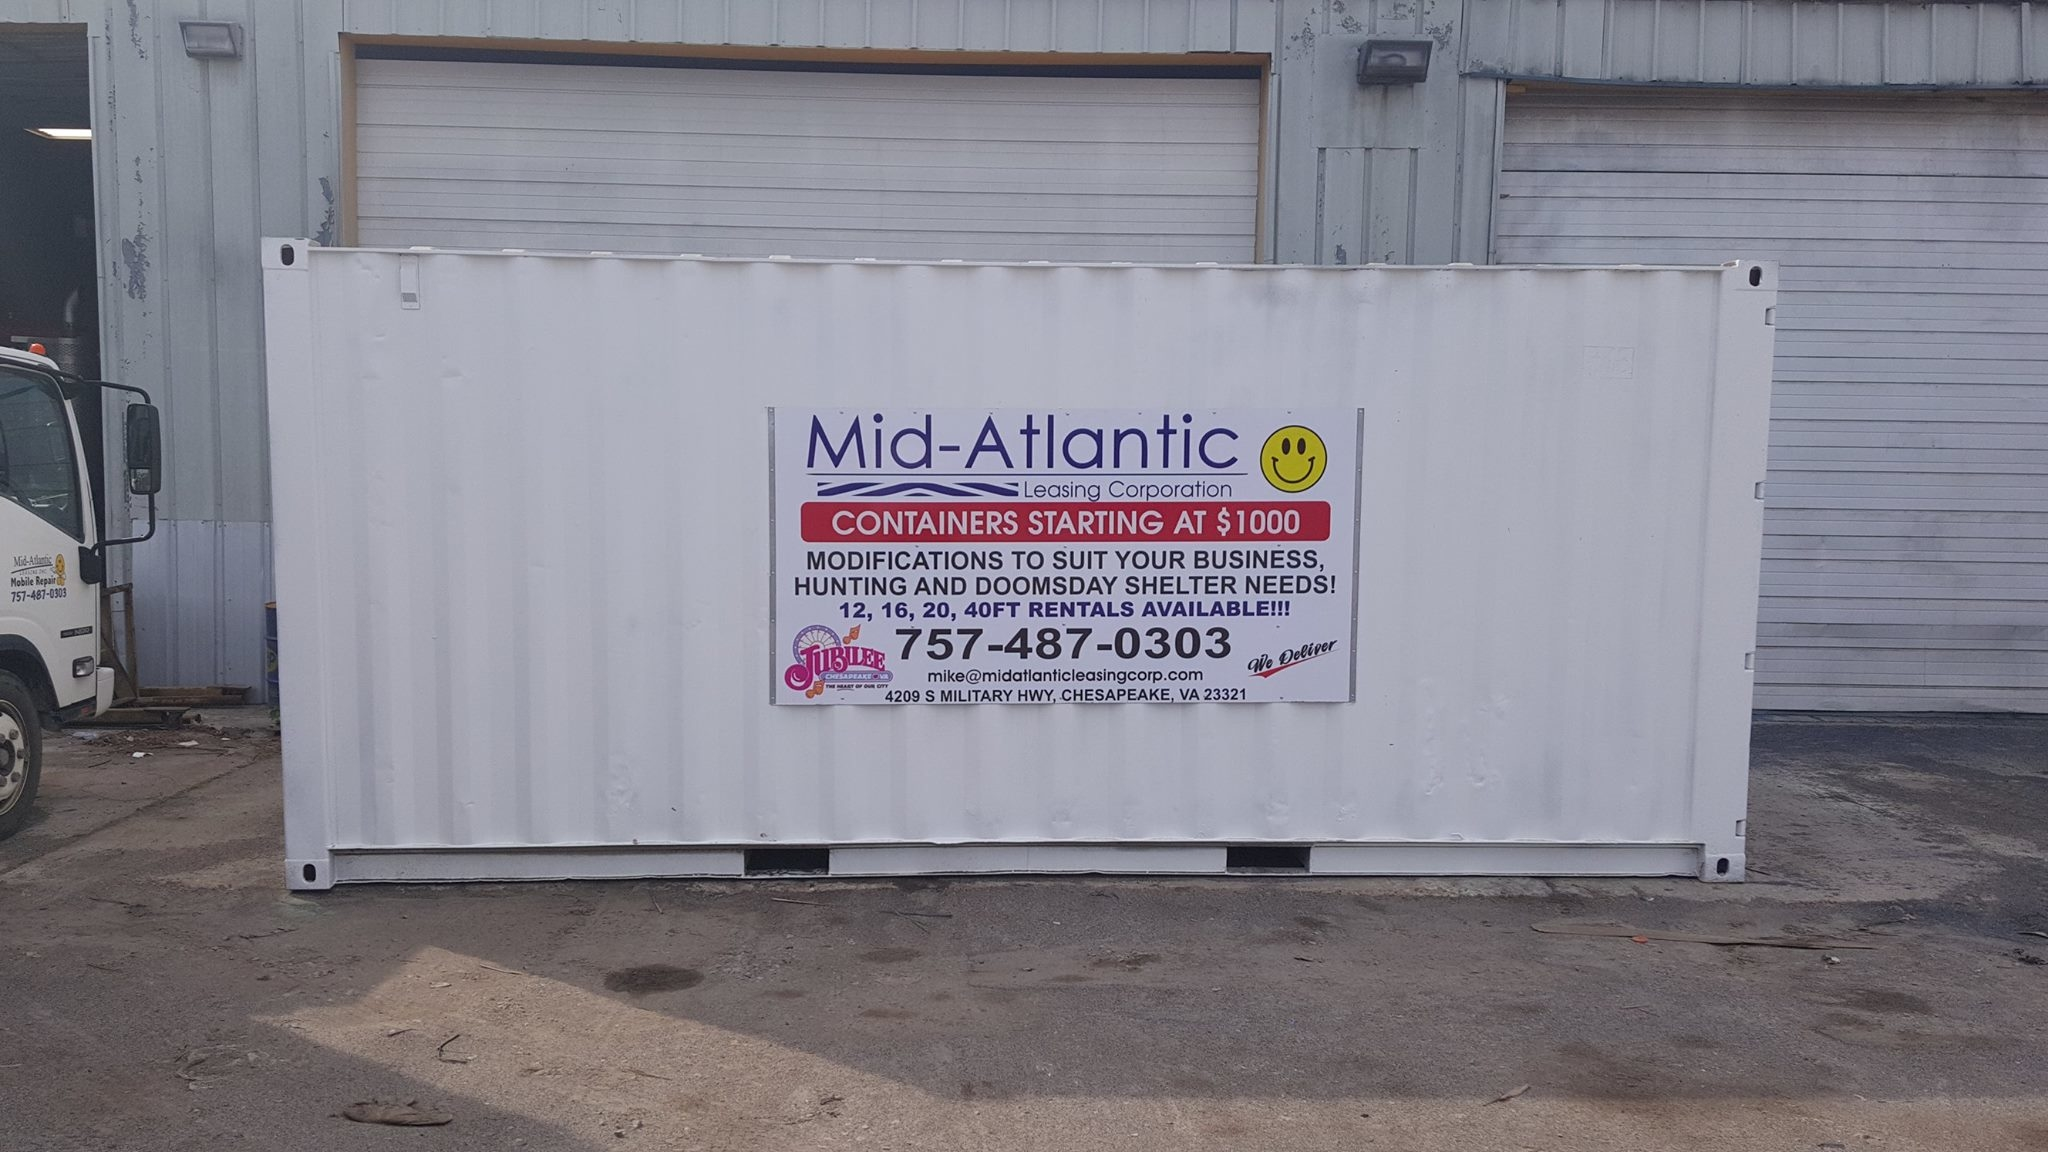 Mid Atlantic Leasing Corporation In Chesapeake Va 23321